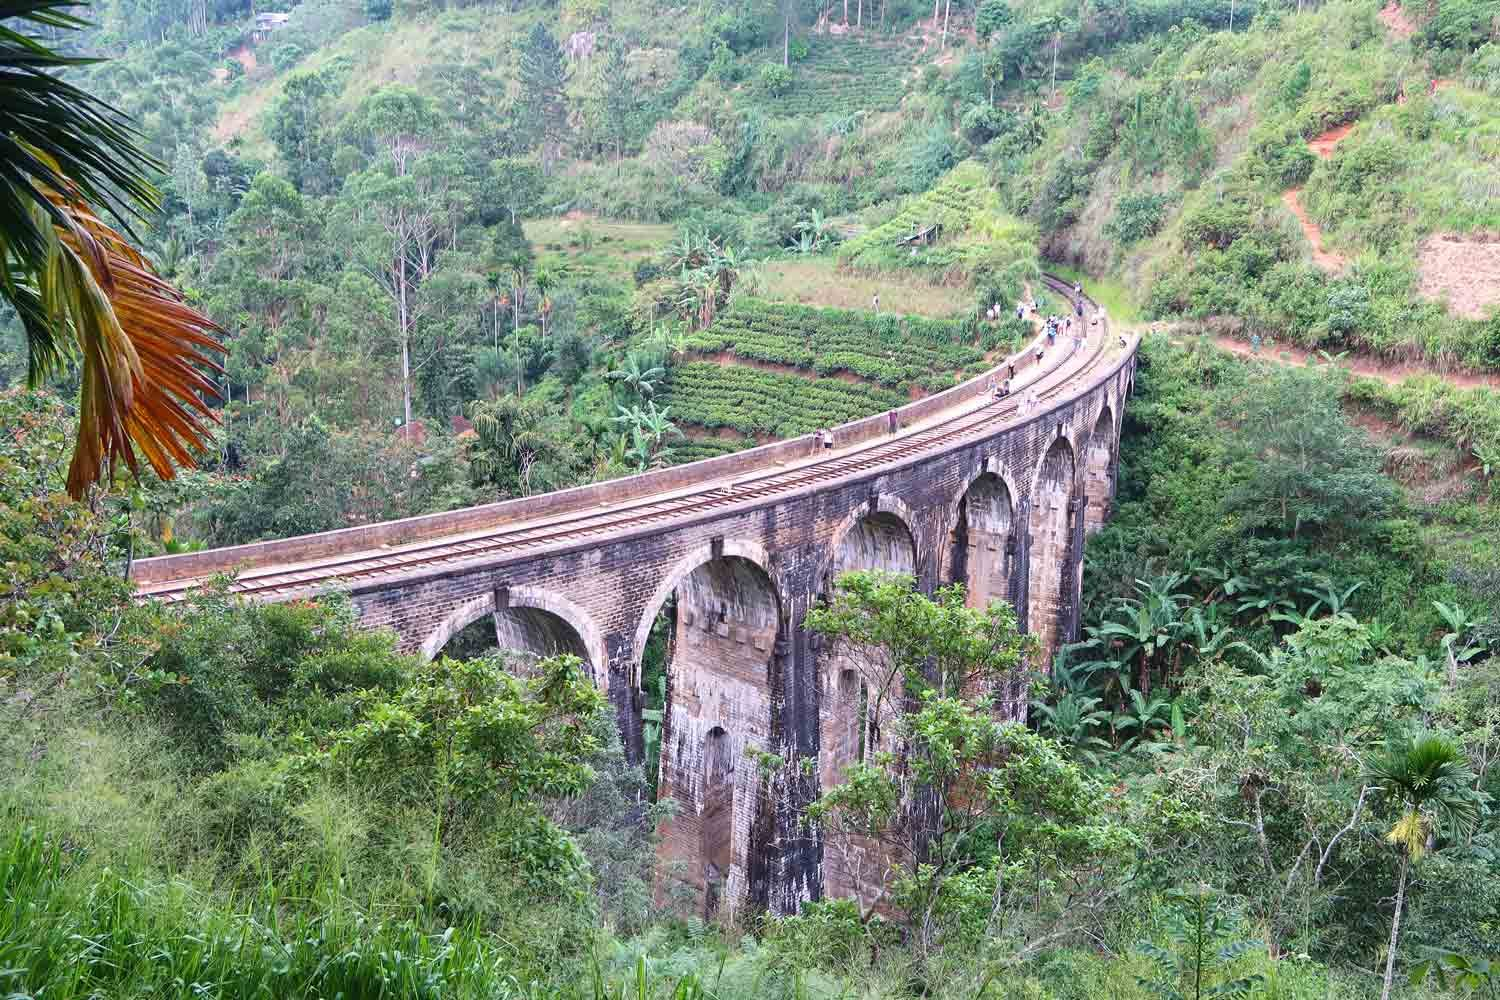 Die Nine Arch Bridge inmitten der Natur in Ella Sri Lanka